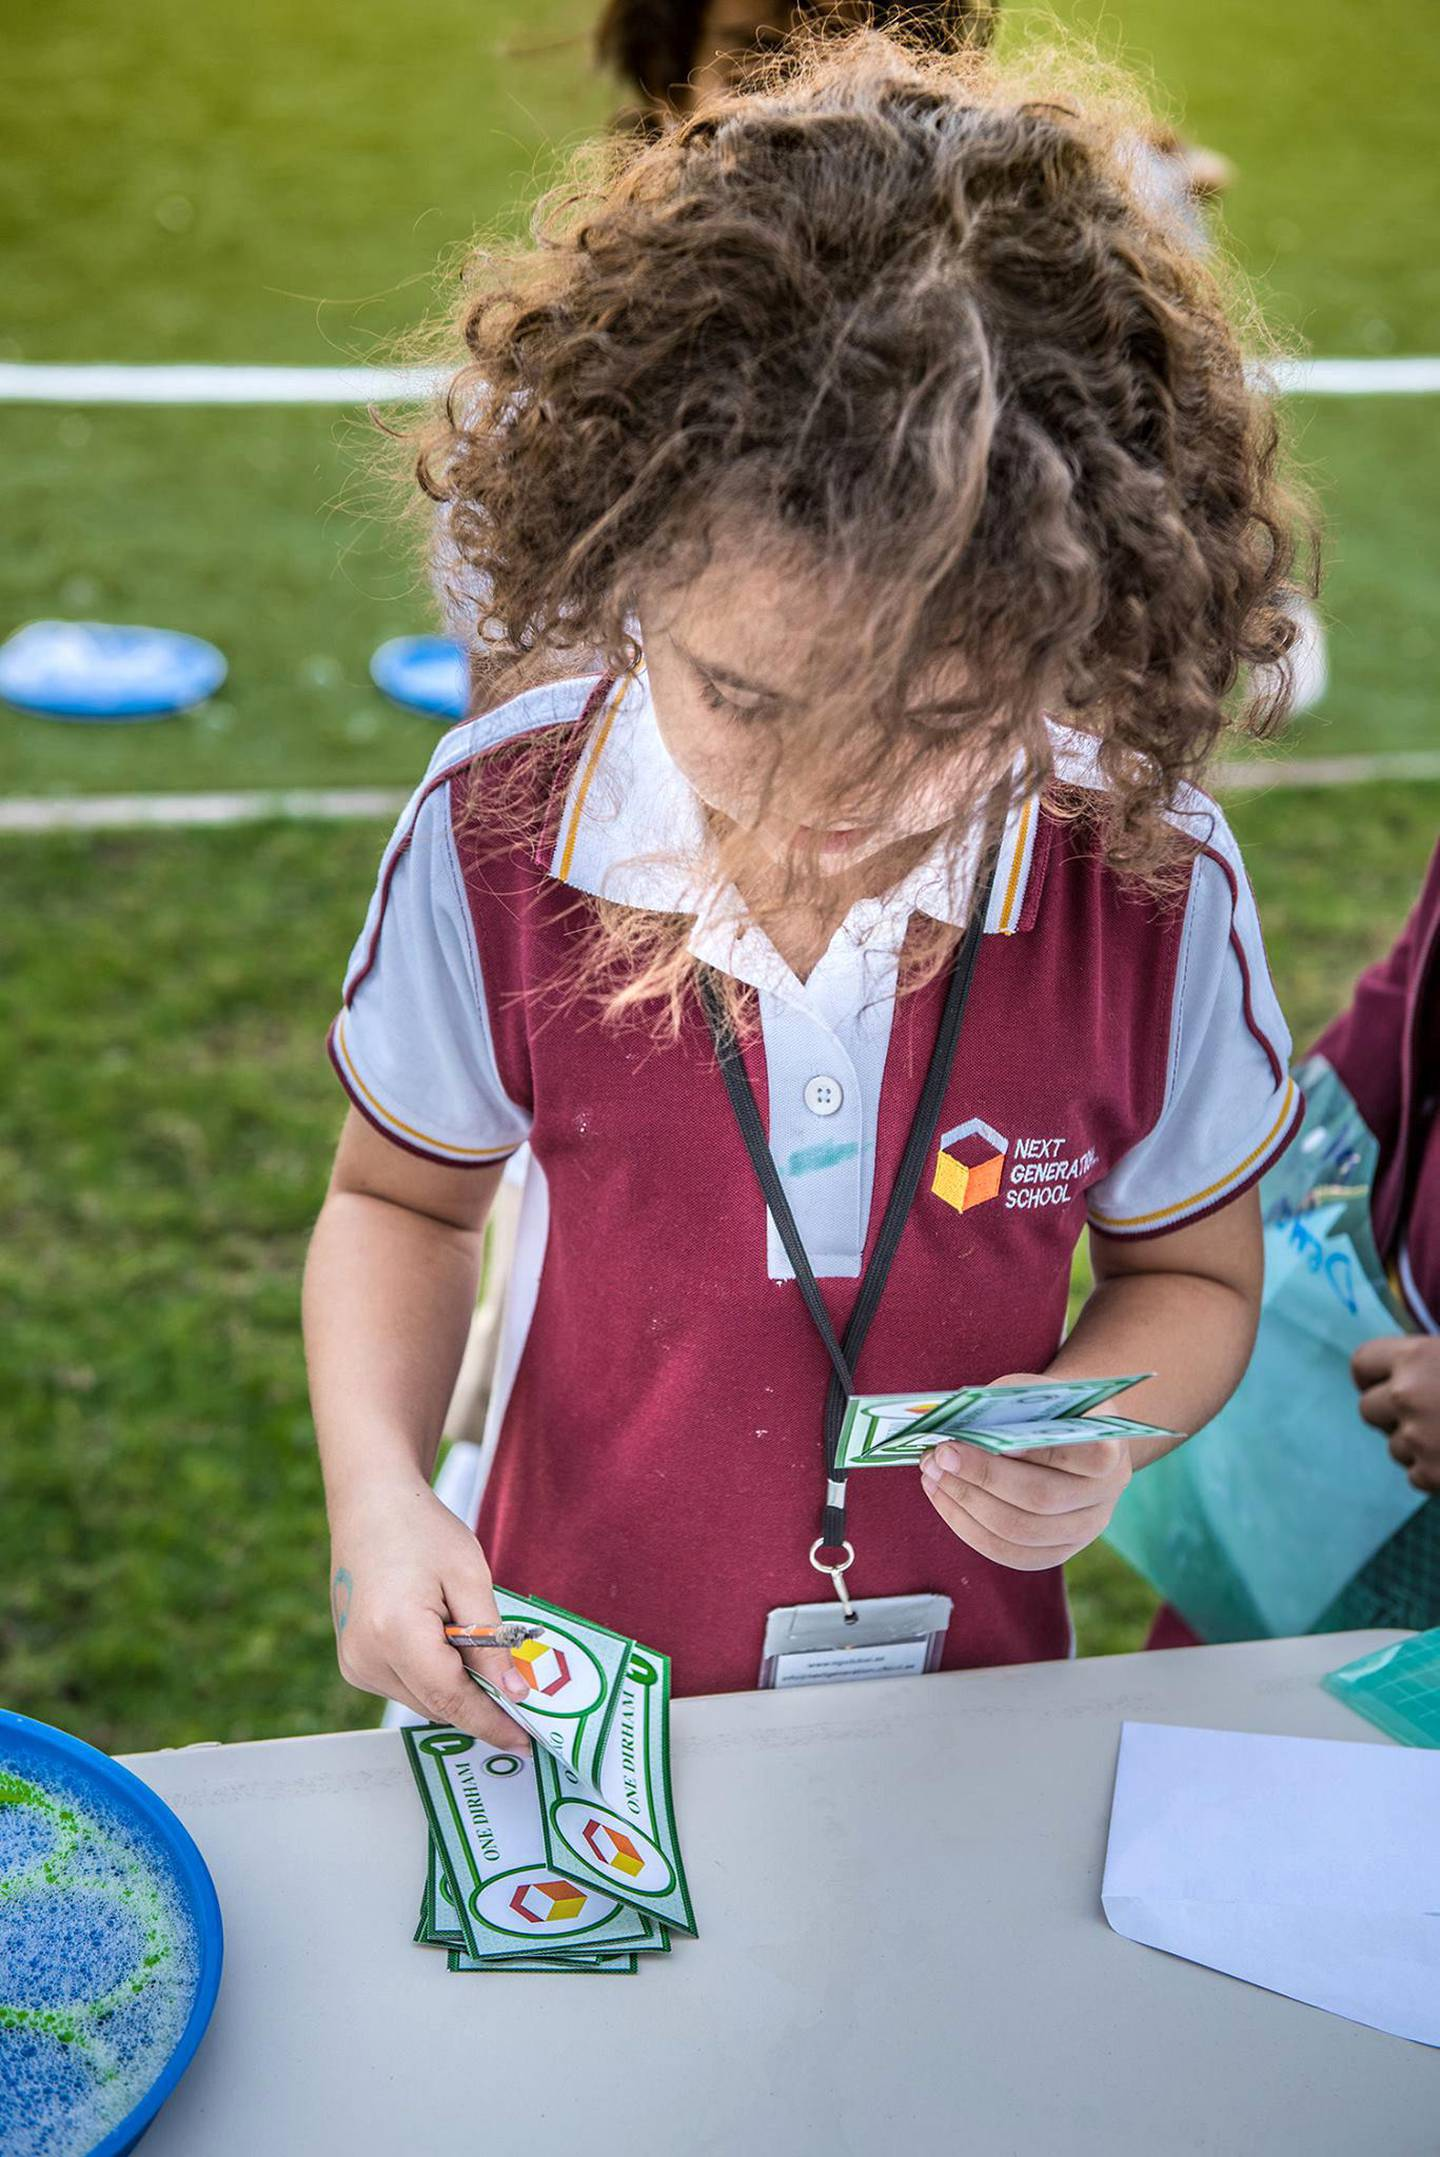 A child at the Next Generation School in Dubai use the in-house currency to buy and sell items at the marketplace. Credit: Courtesy NGS